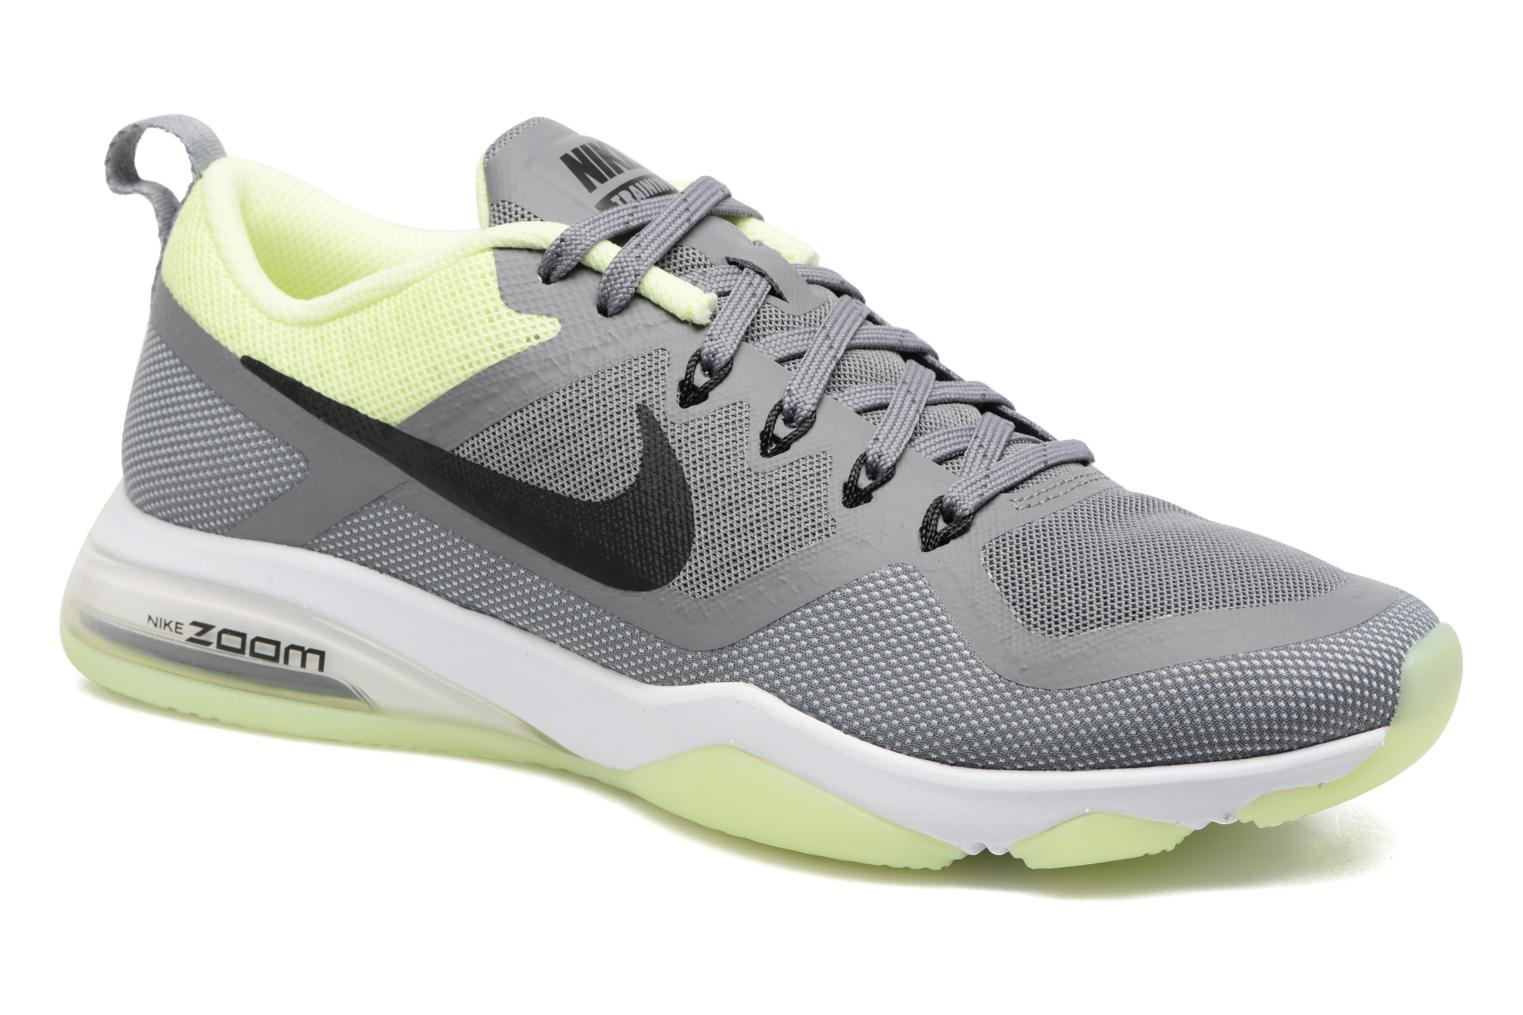 Marques Chaussure femme Nike femme Wmns Nike Air Zoom Fitness Cool Grey/Black-Pure Platinum